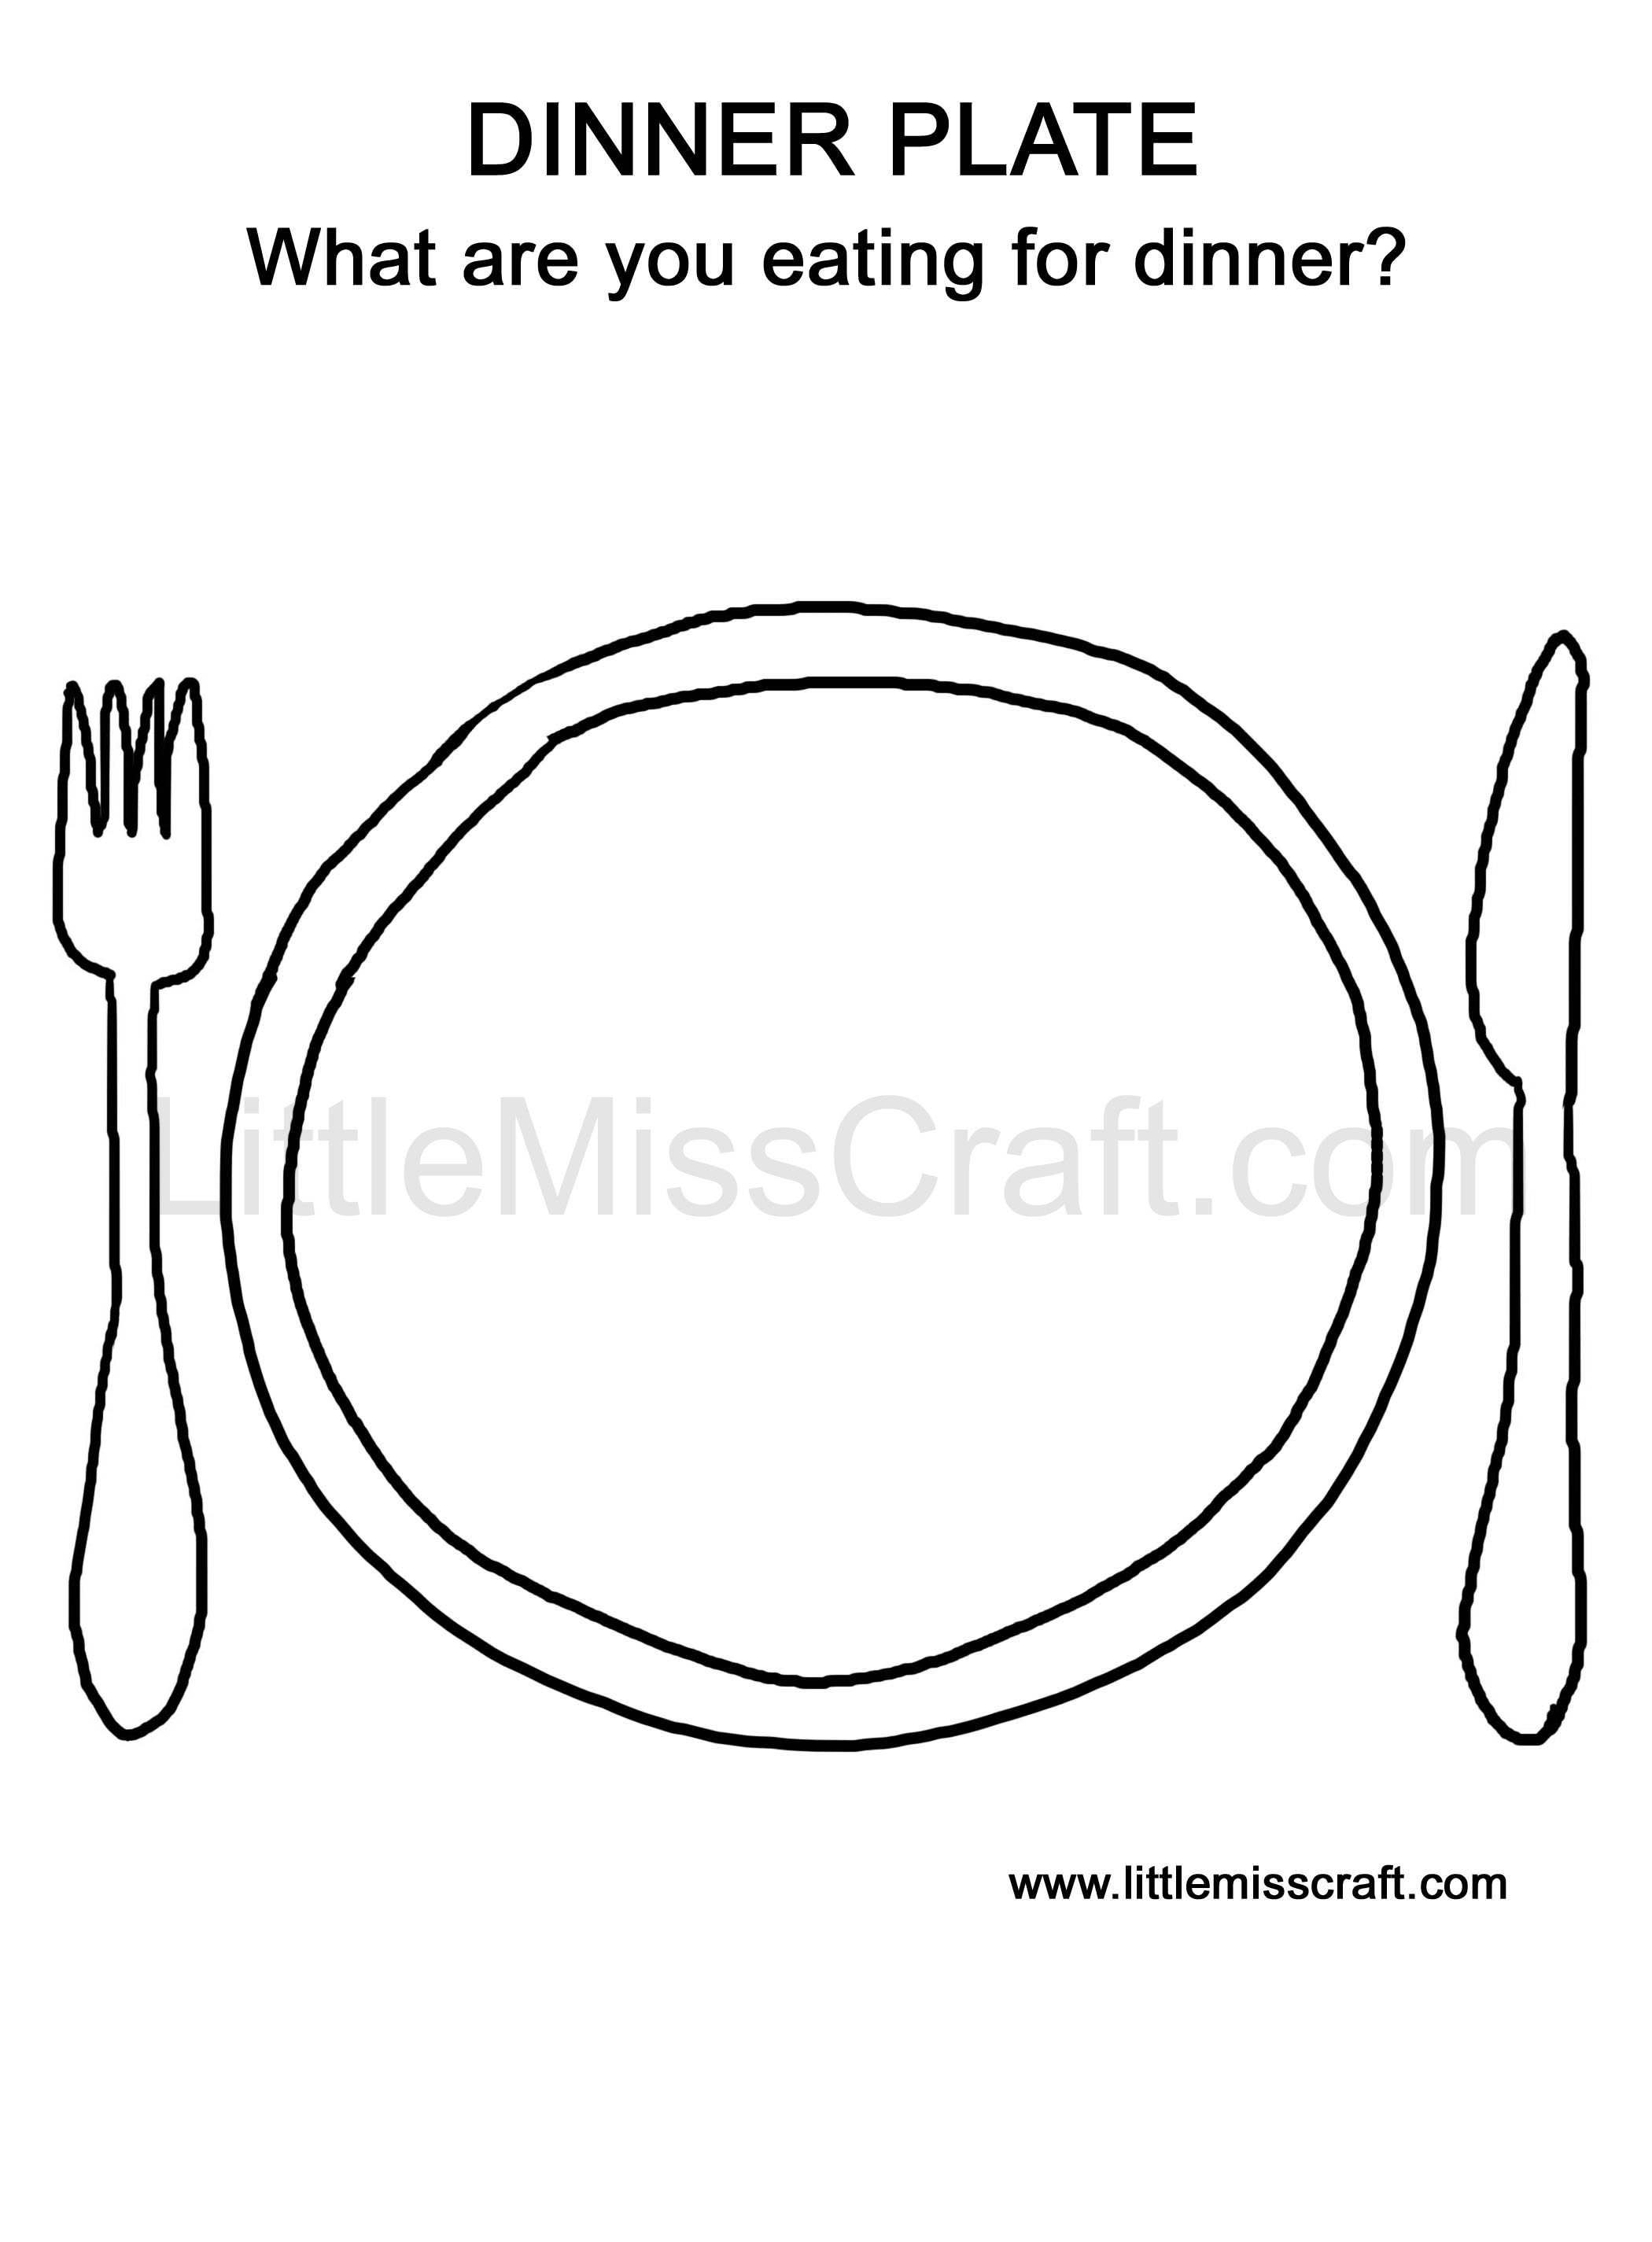 Dinner Plate Doodle Coloring Page